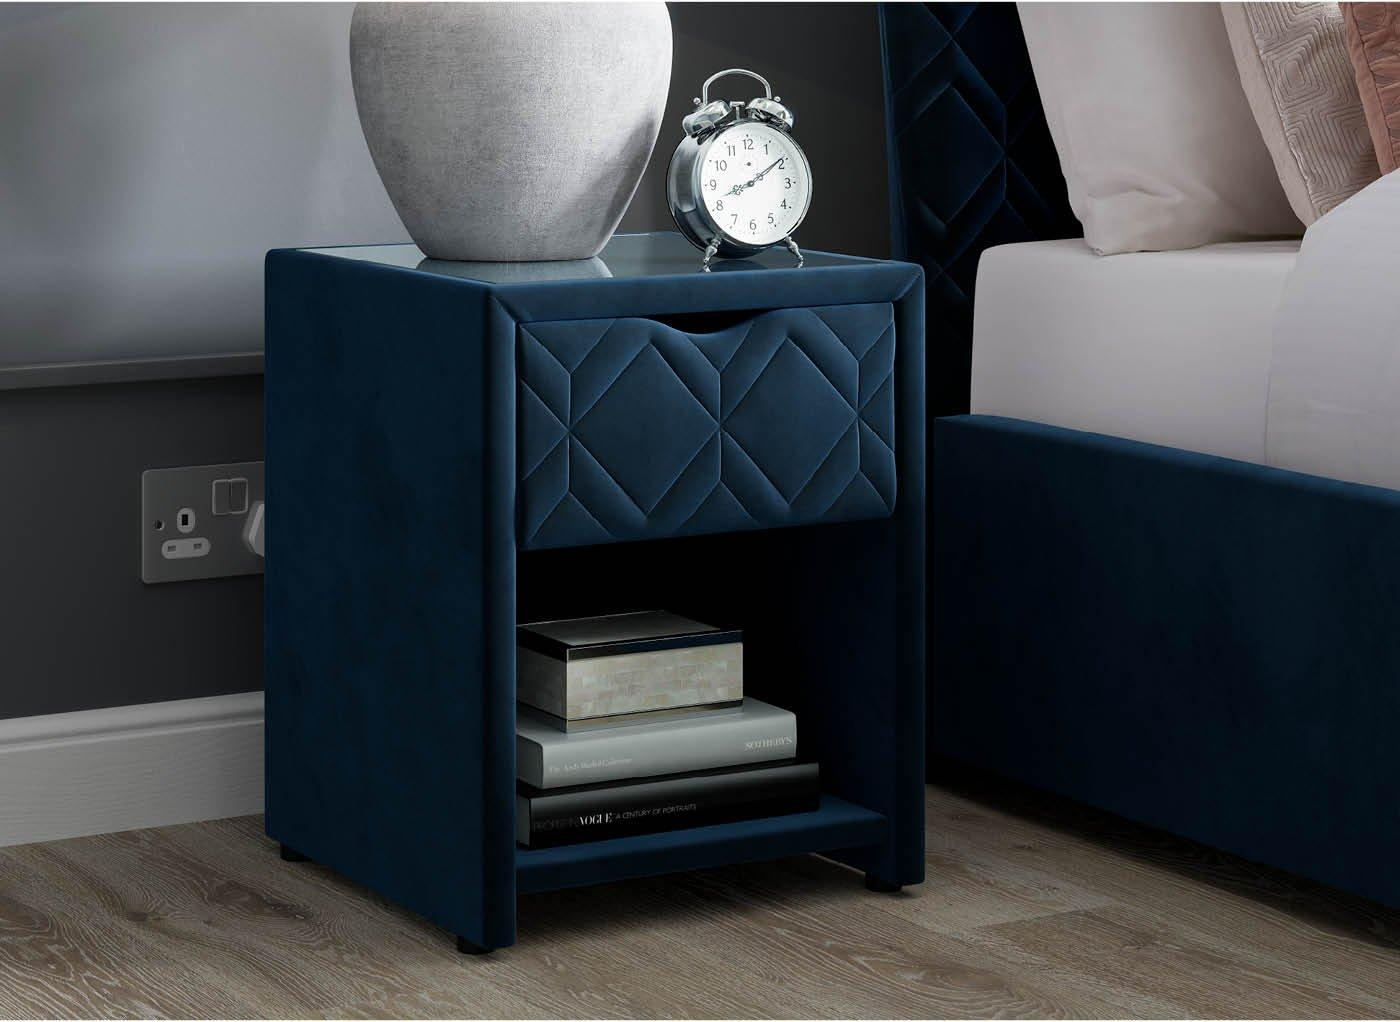 Neva Blue Bedside Table with USB